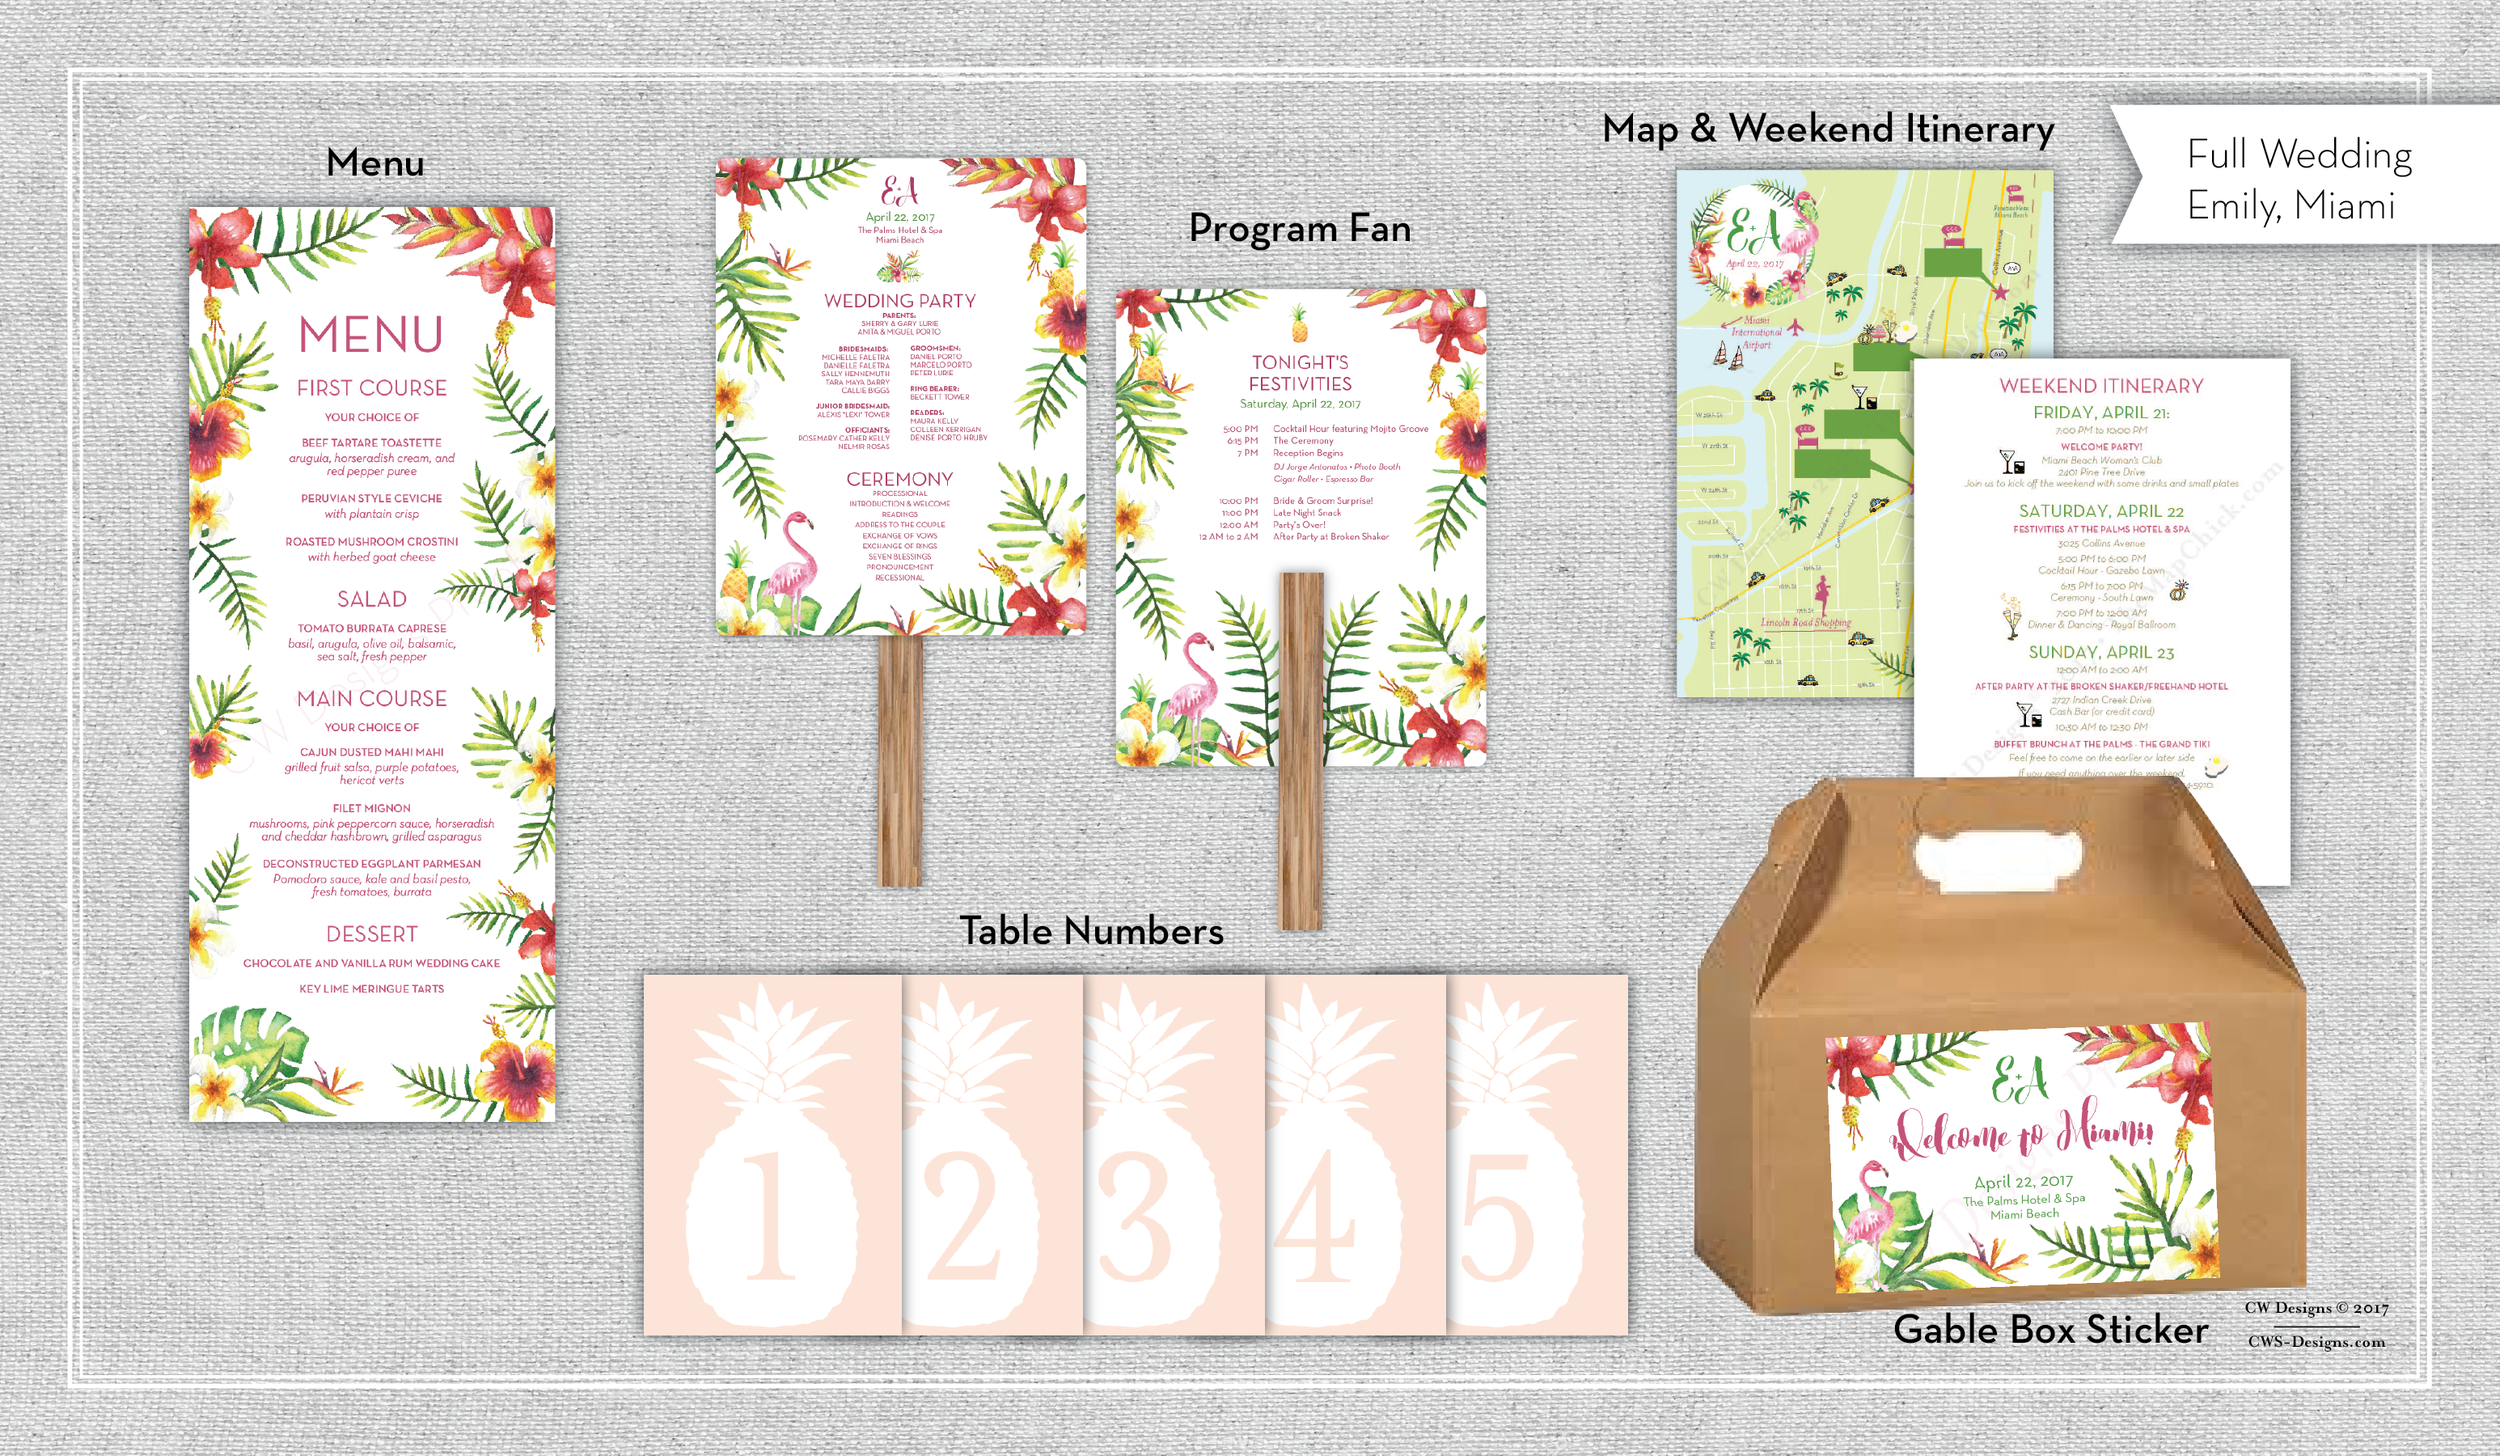 ALL pieces for weddings Table Numbers & seating chart Linen Background Etsy Listings-01.png